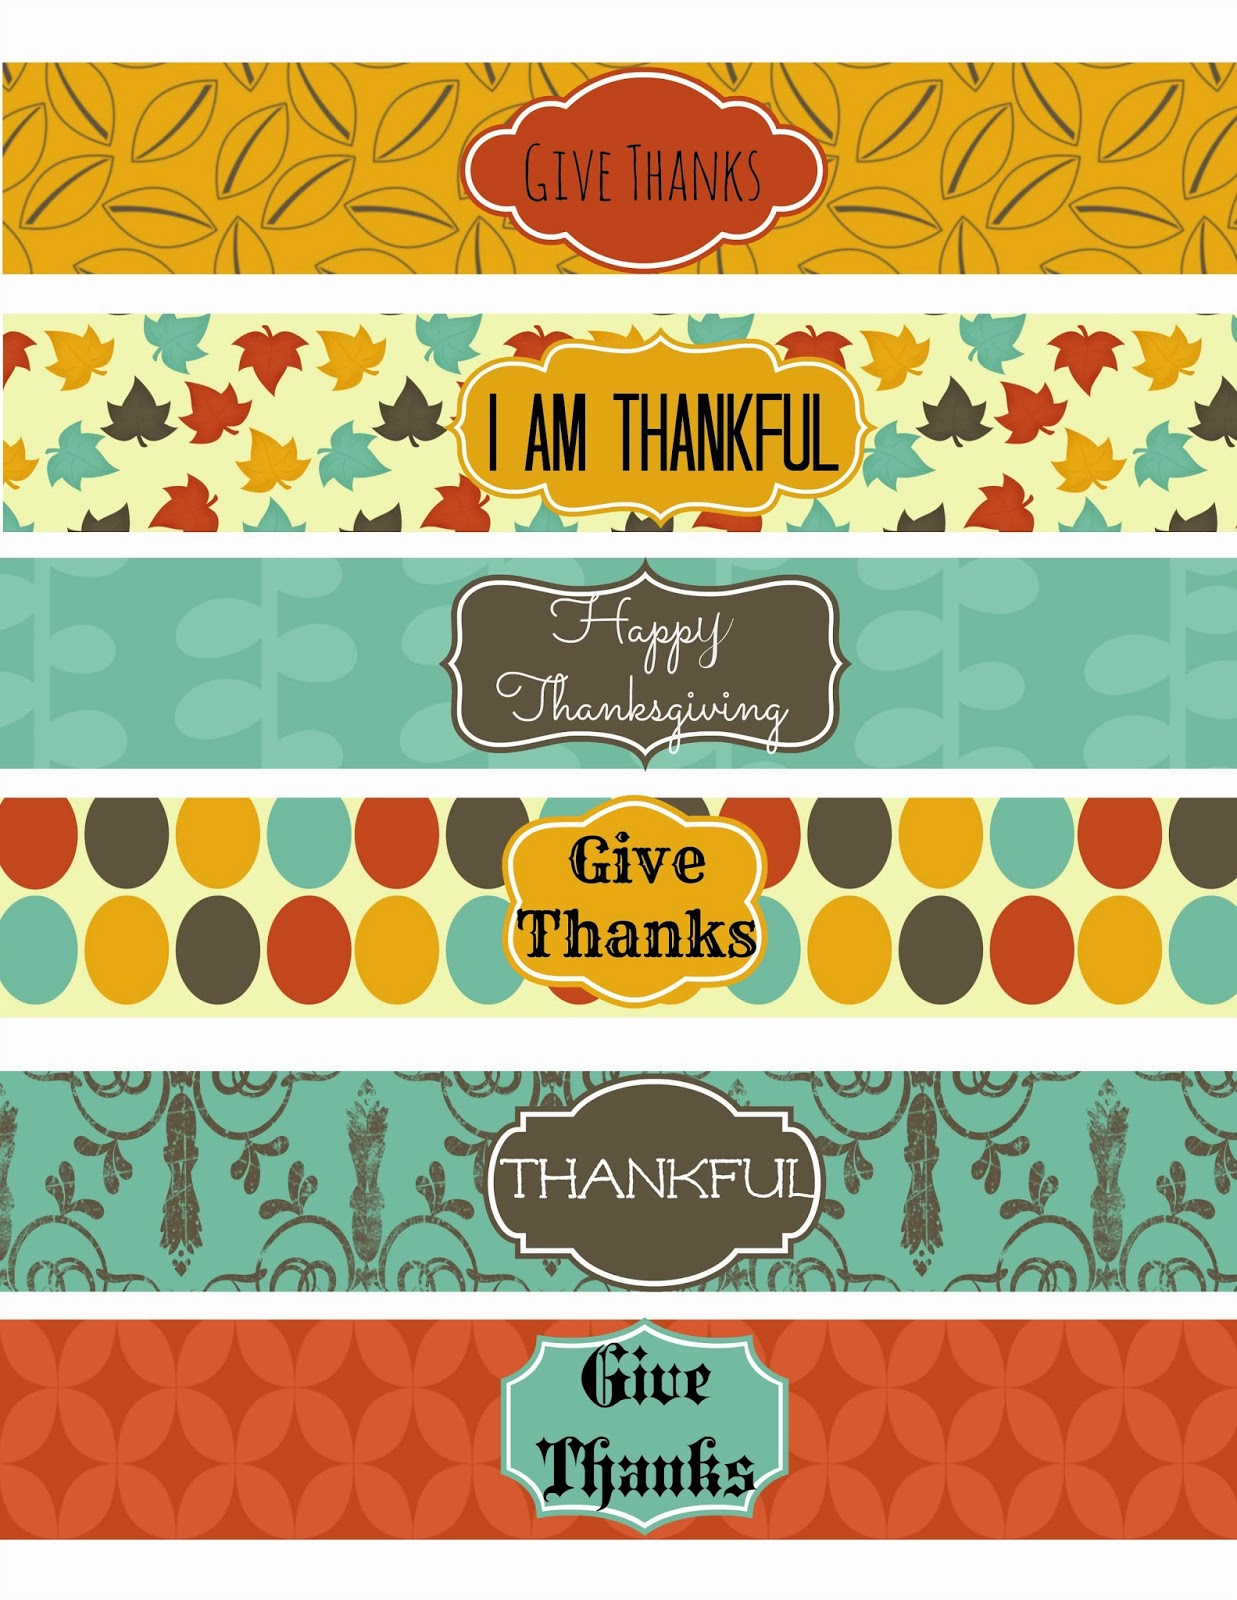 Second Chance To Dream - Free Thanksgiving Party Printables Set 1 - Free Printable Thanksgiving Images